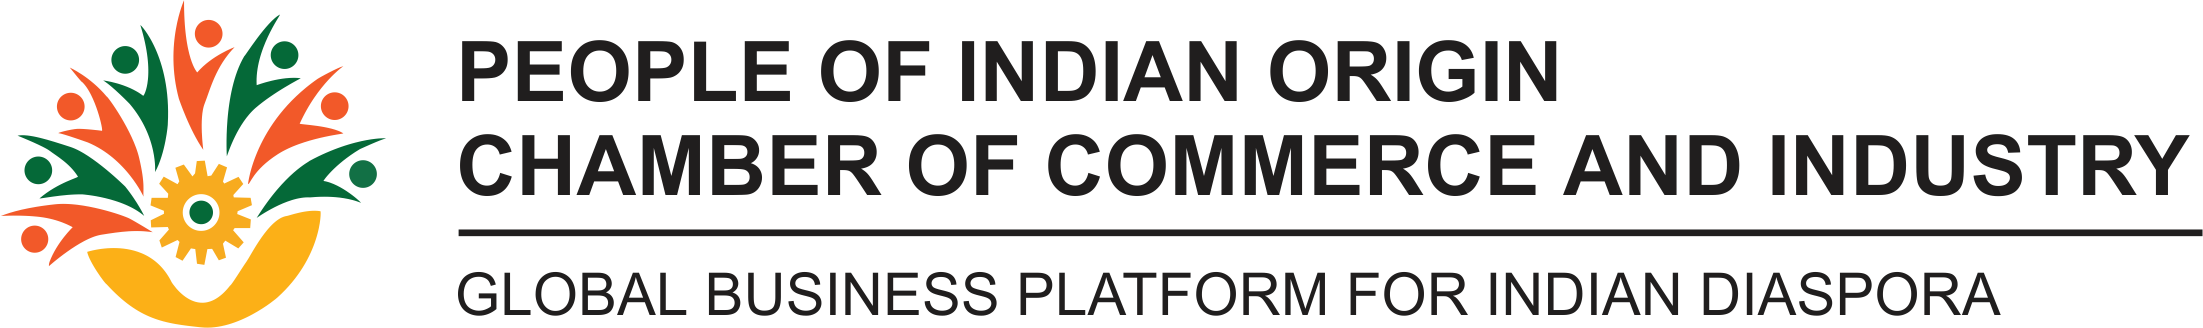 People of Indian Origin Chamber of Commerce and Industry (PIOCCI)